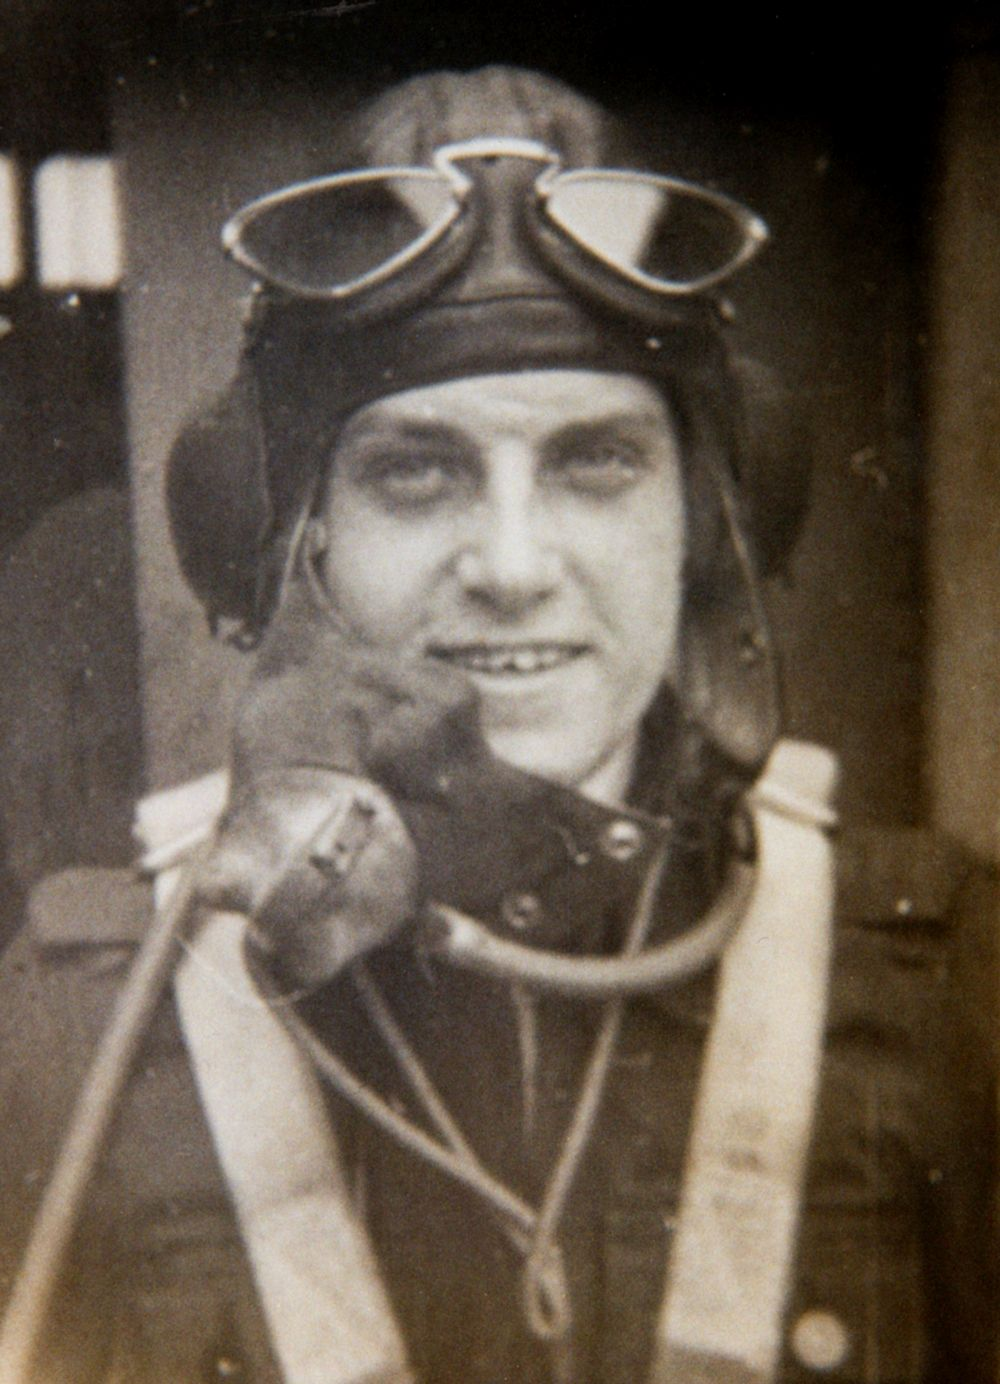 * Battle of Britain Medal Group - Air Commodore Peter Brothers - Image 10 of 14